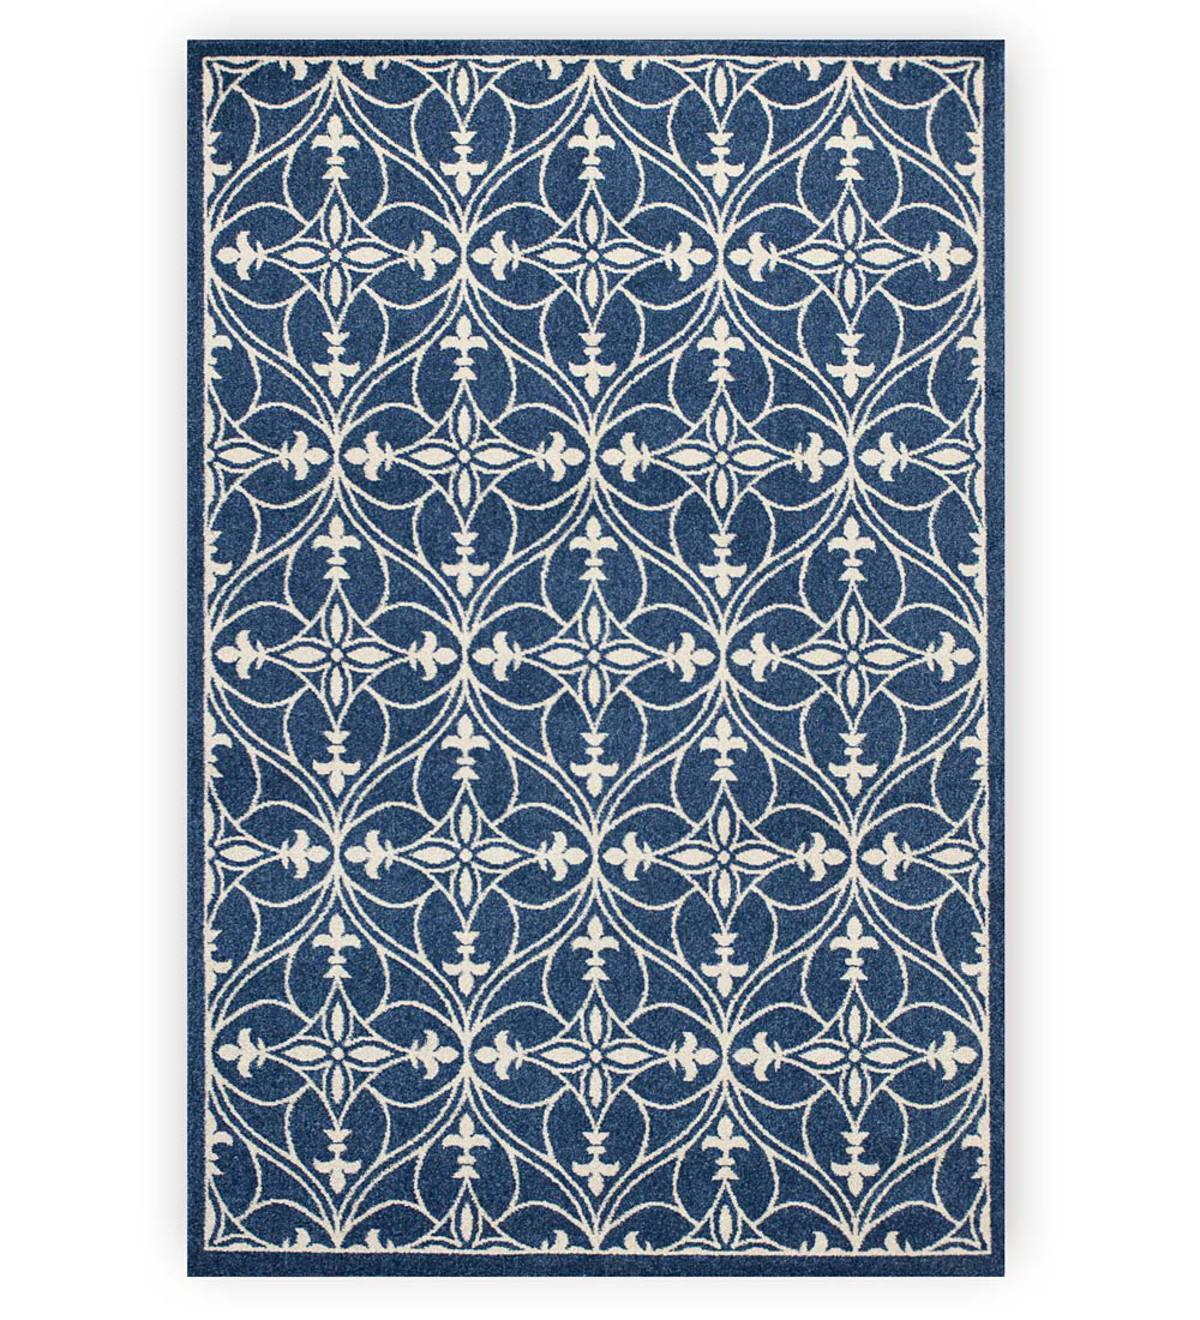 "Bowman Area Rug, 6'7""x 9'6"" - Denim"